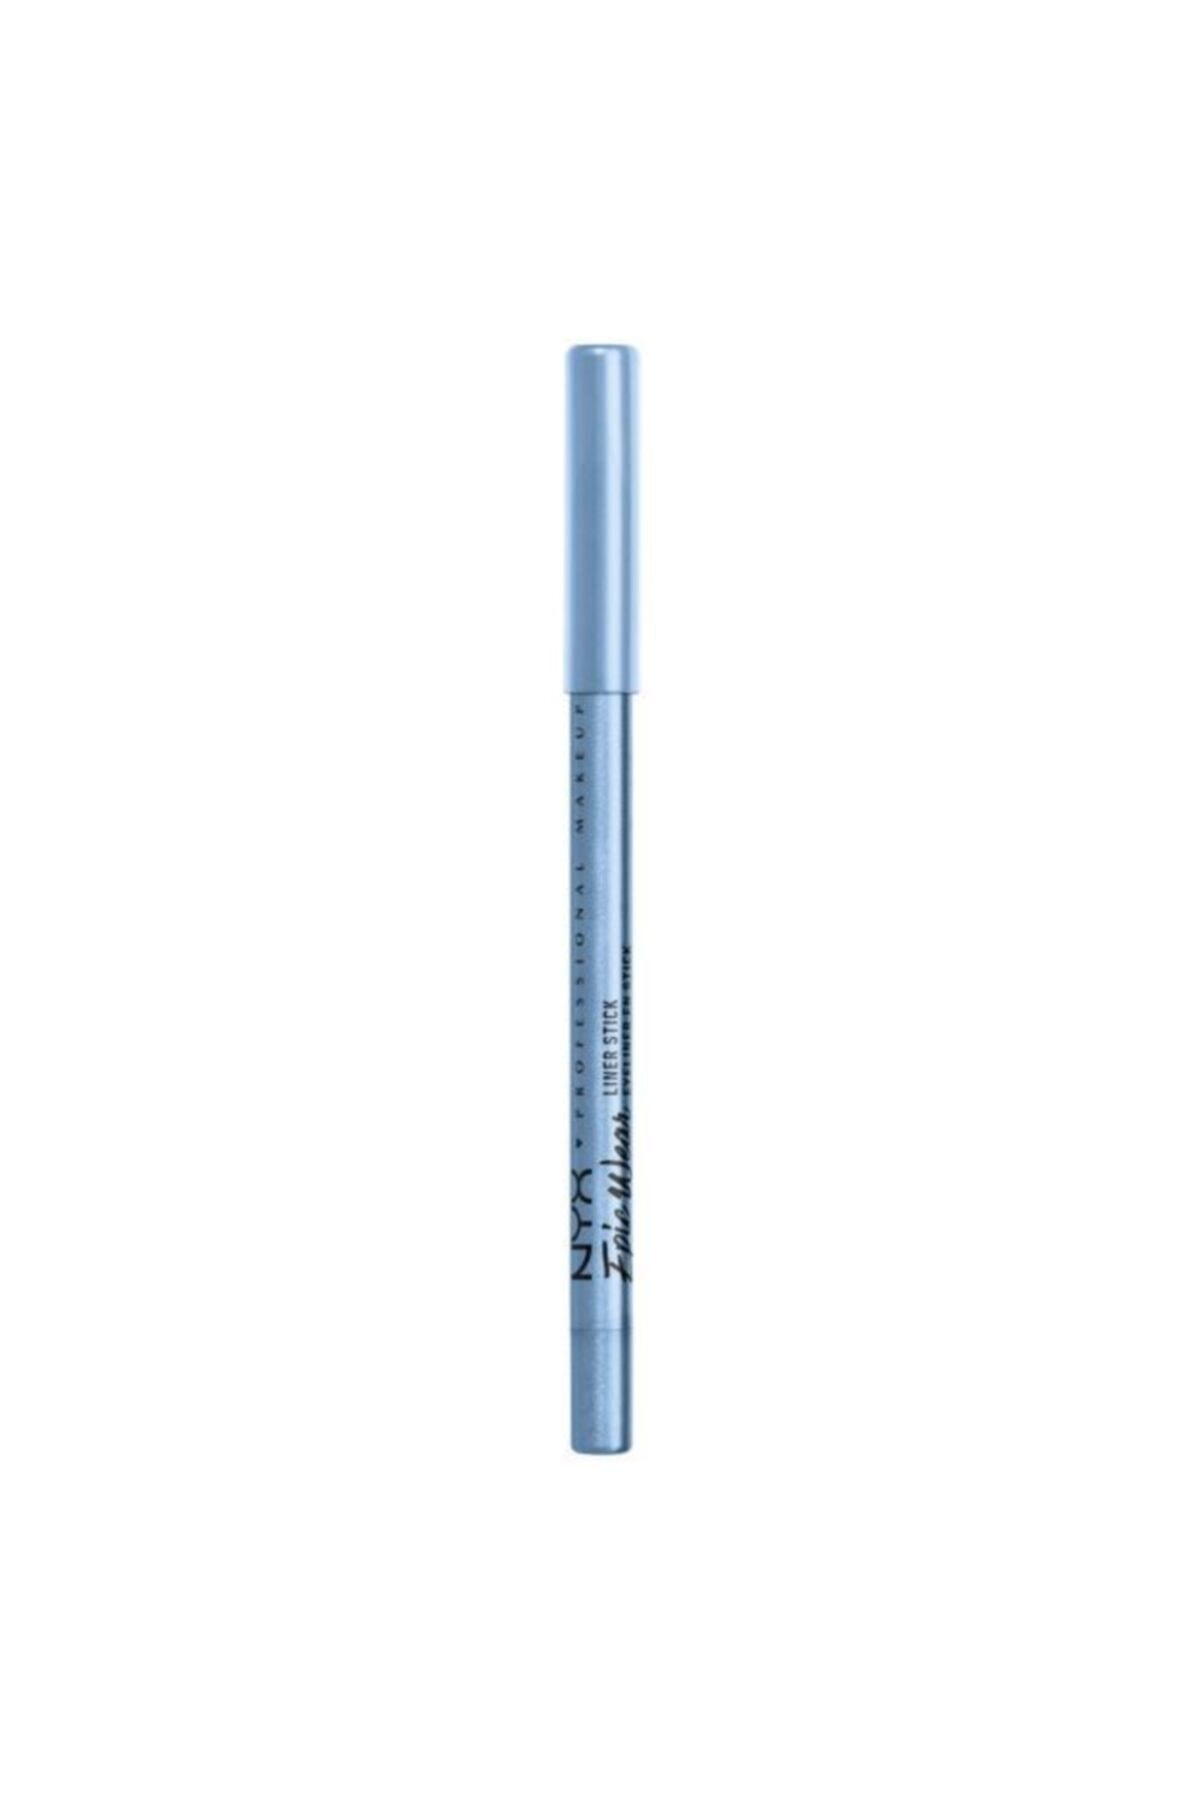 NYX Professional Makeup Göz Kalemi - Epic Wear Liner Sticks Chill 800897207632 2